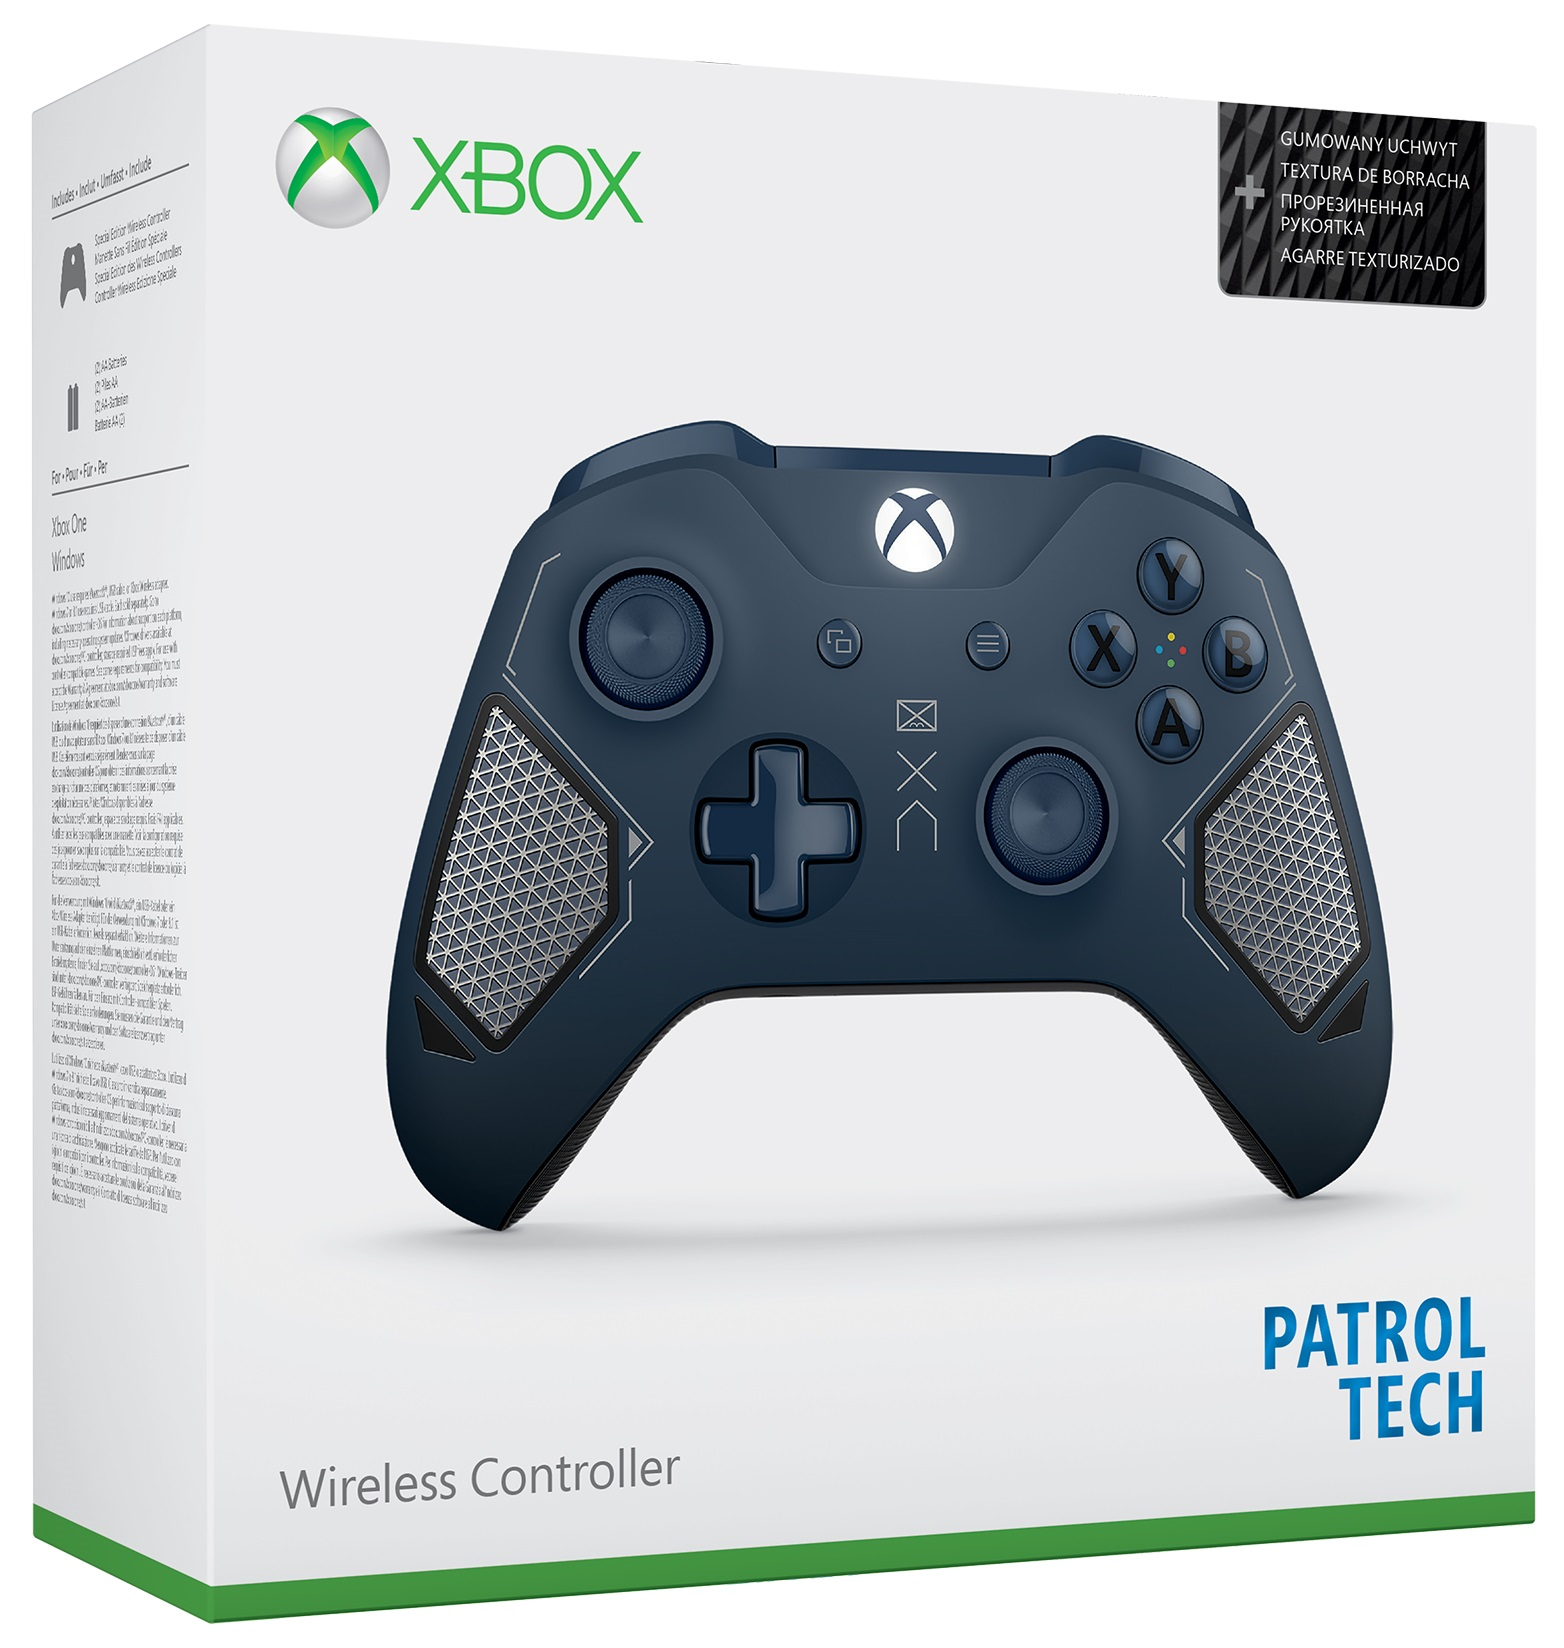 Microsoft Xbox One Wireless Controller Patrol Tech